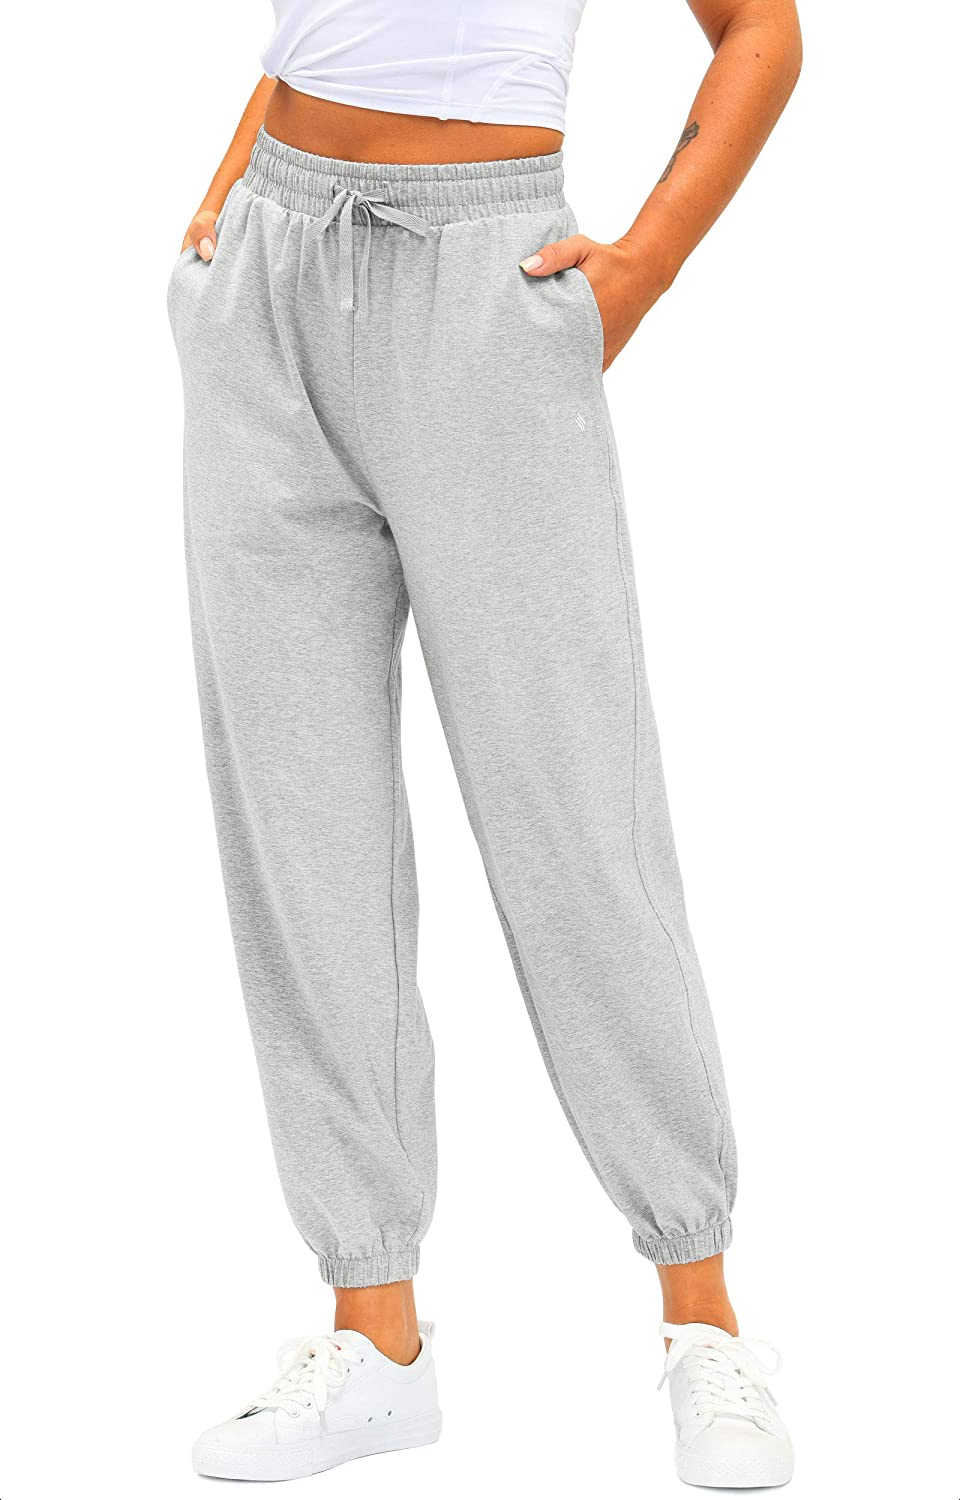 Women's Max 46% OFF Cotton Don't miss the campaign Sweatpants High Waisted Pants Athlet with Pockets